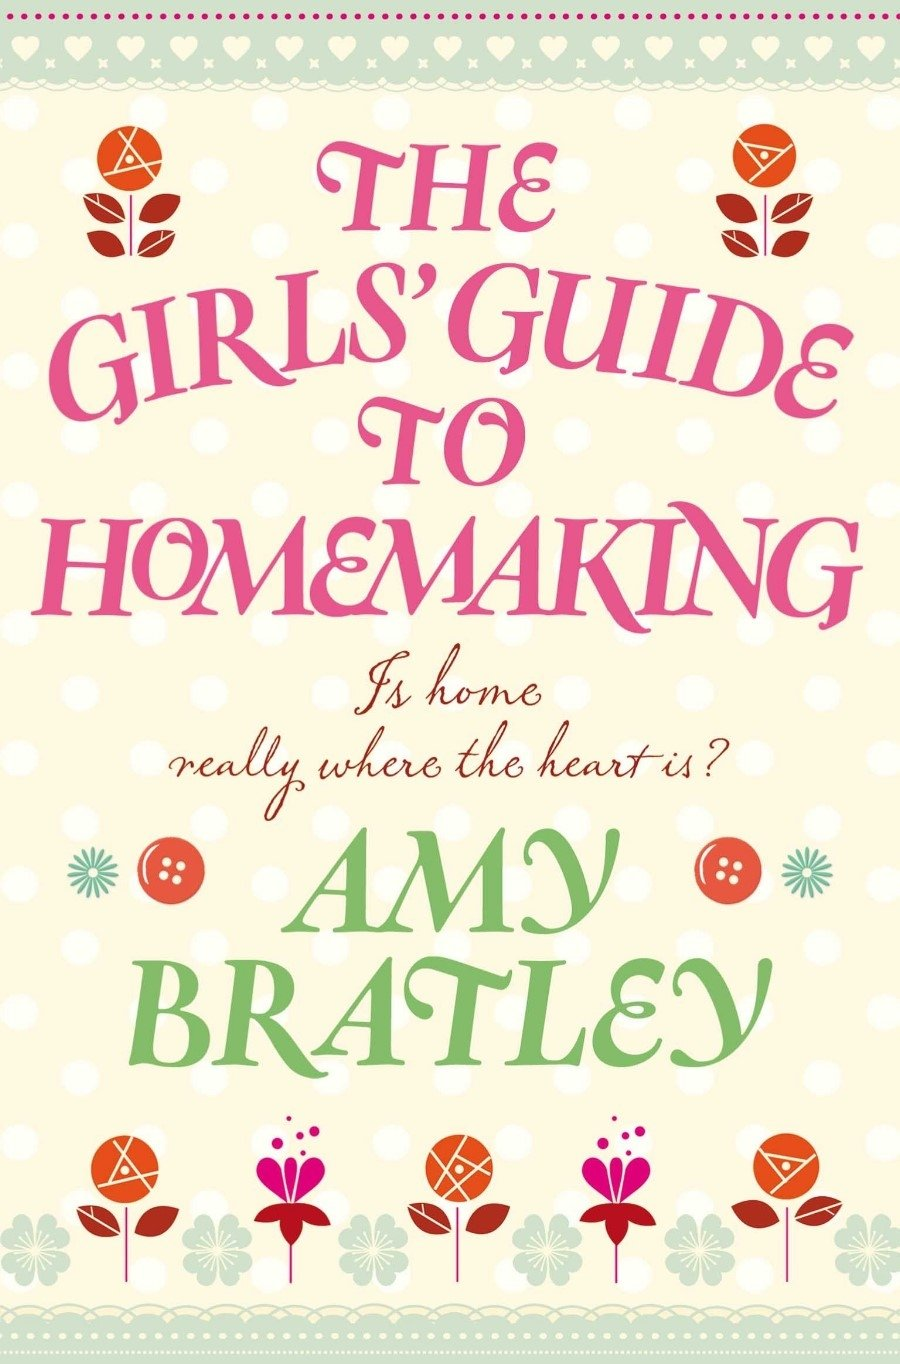 Bildresultat för the girls' guide to homemaking